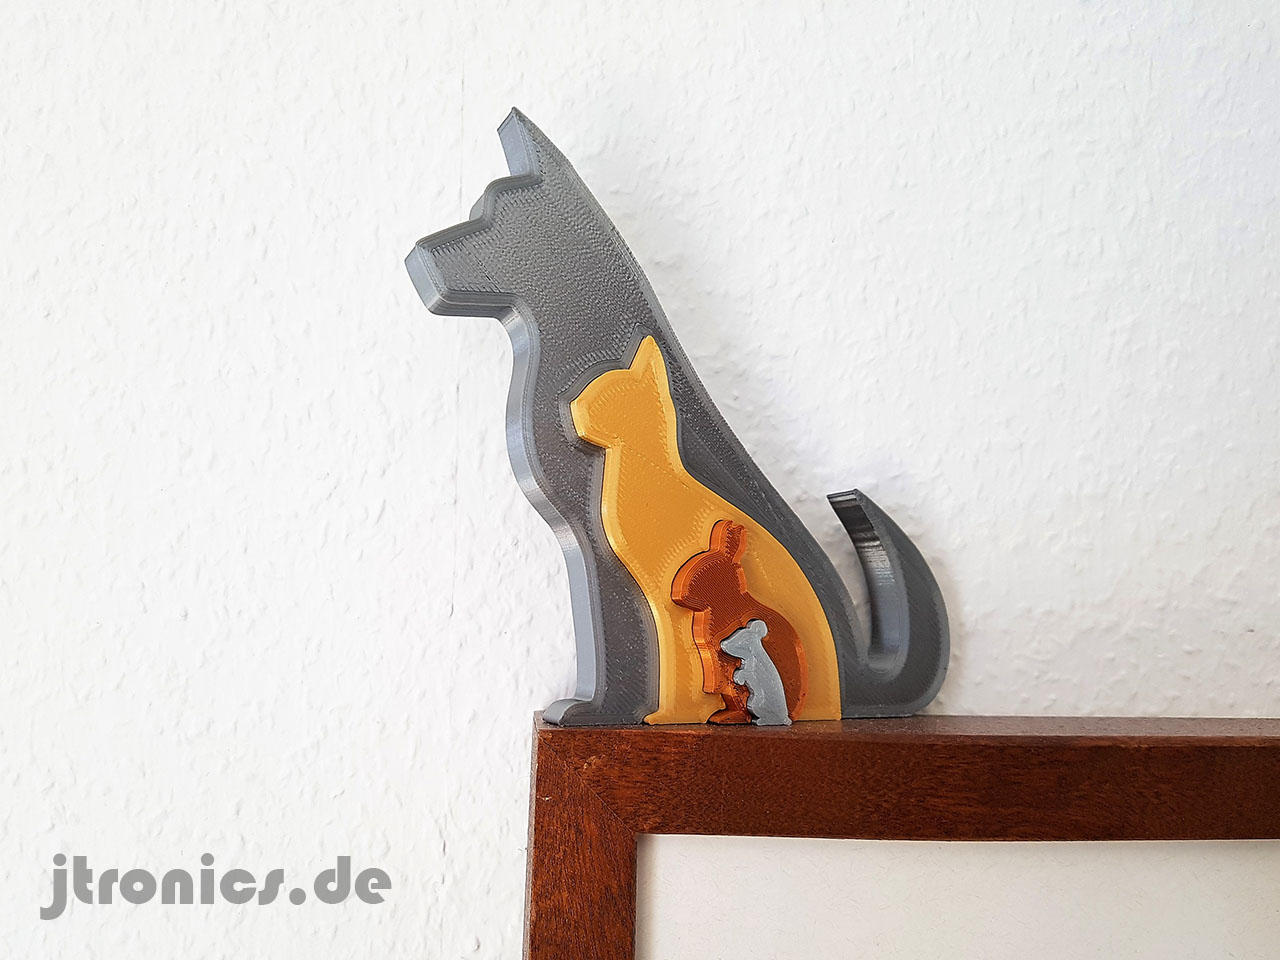 20190618_123028.jpg Download free STL file Animal Silhouette - Dog Cat Rabbit Mouse • 3D printing template, jtronics